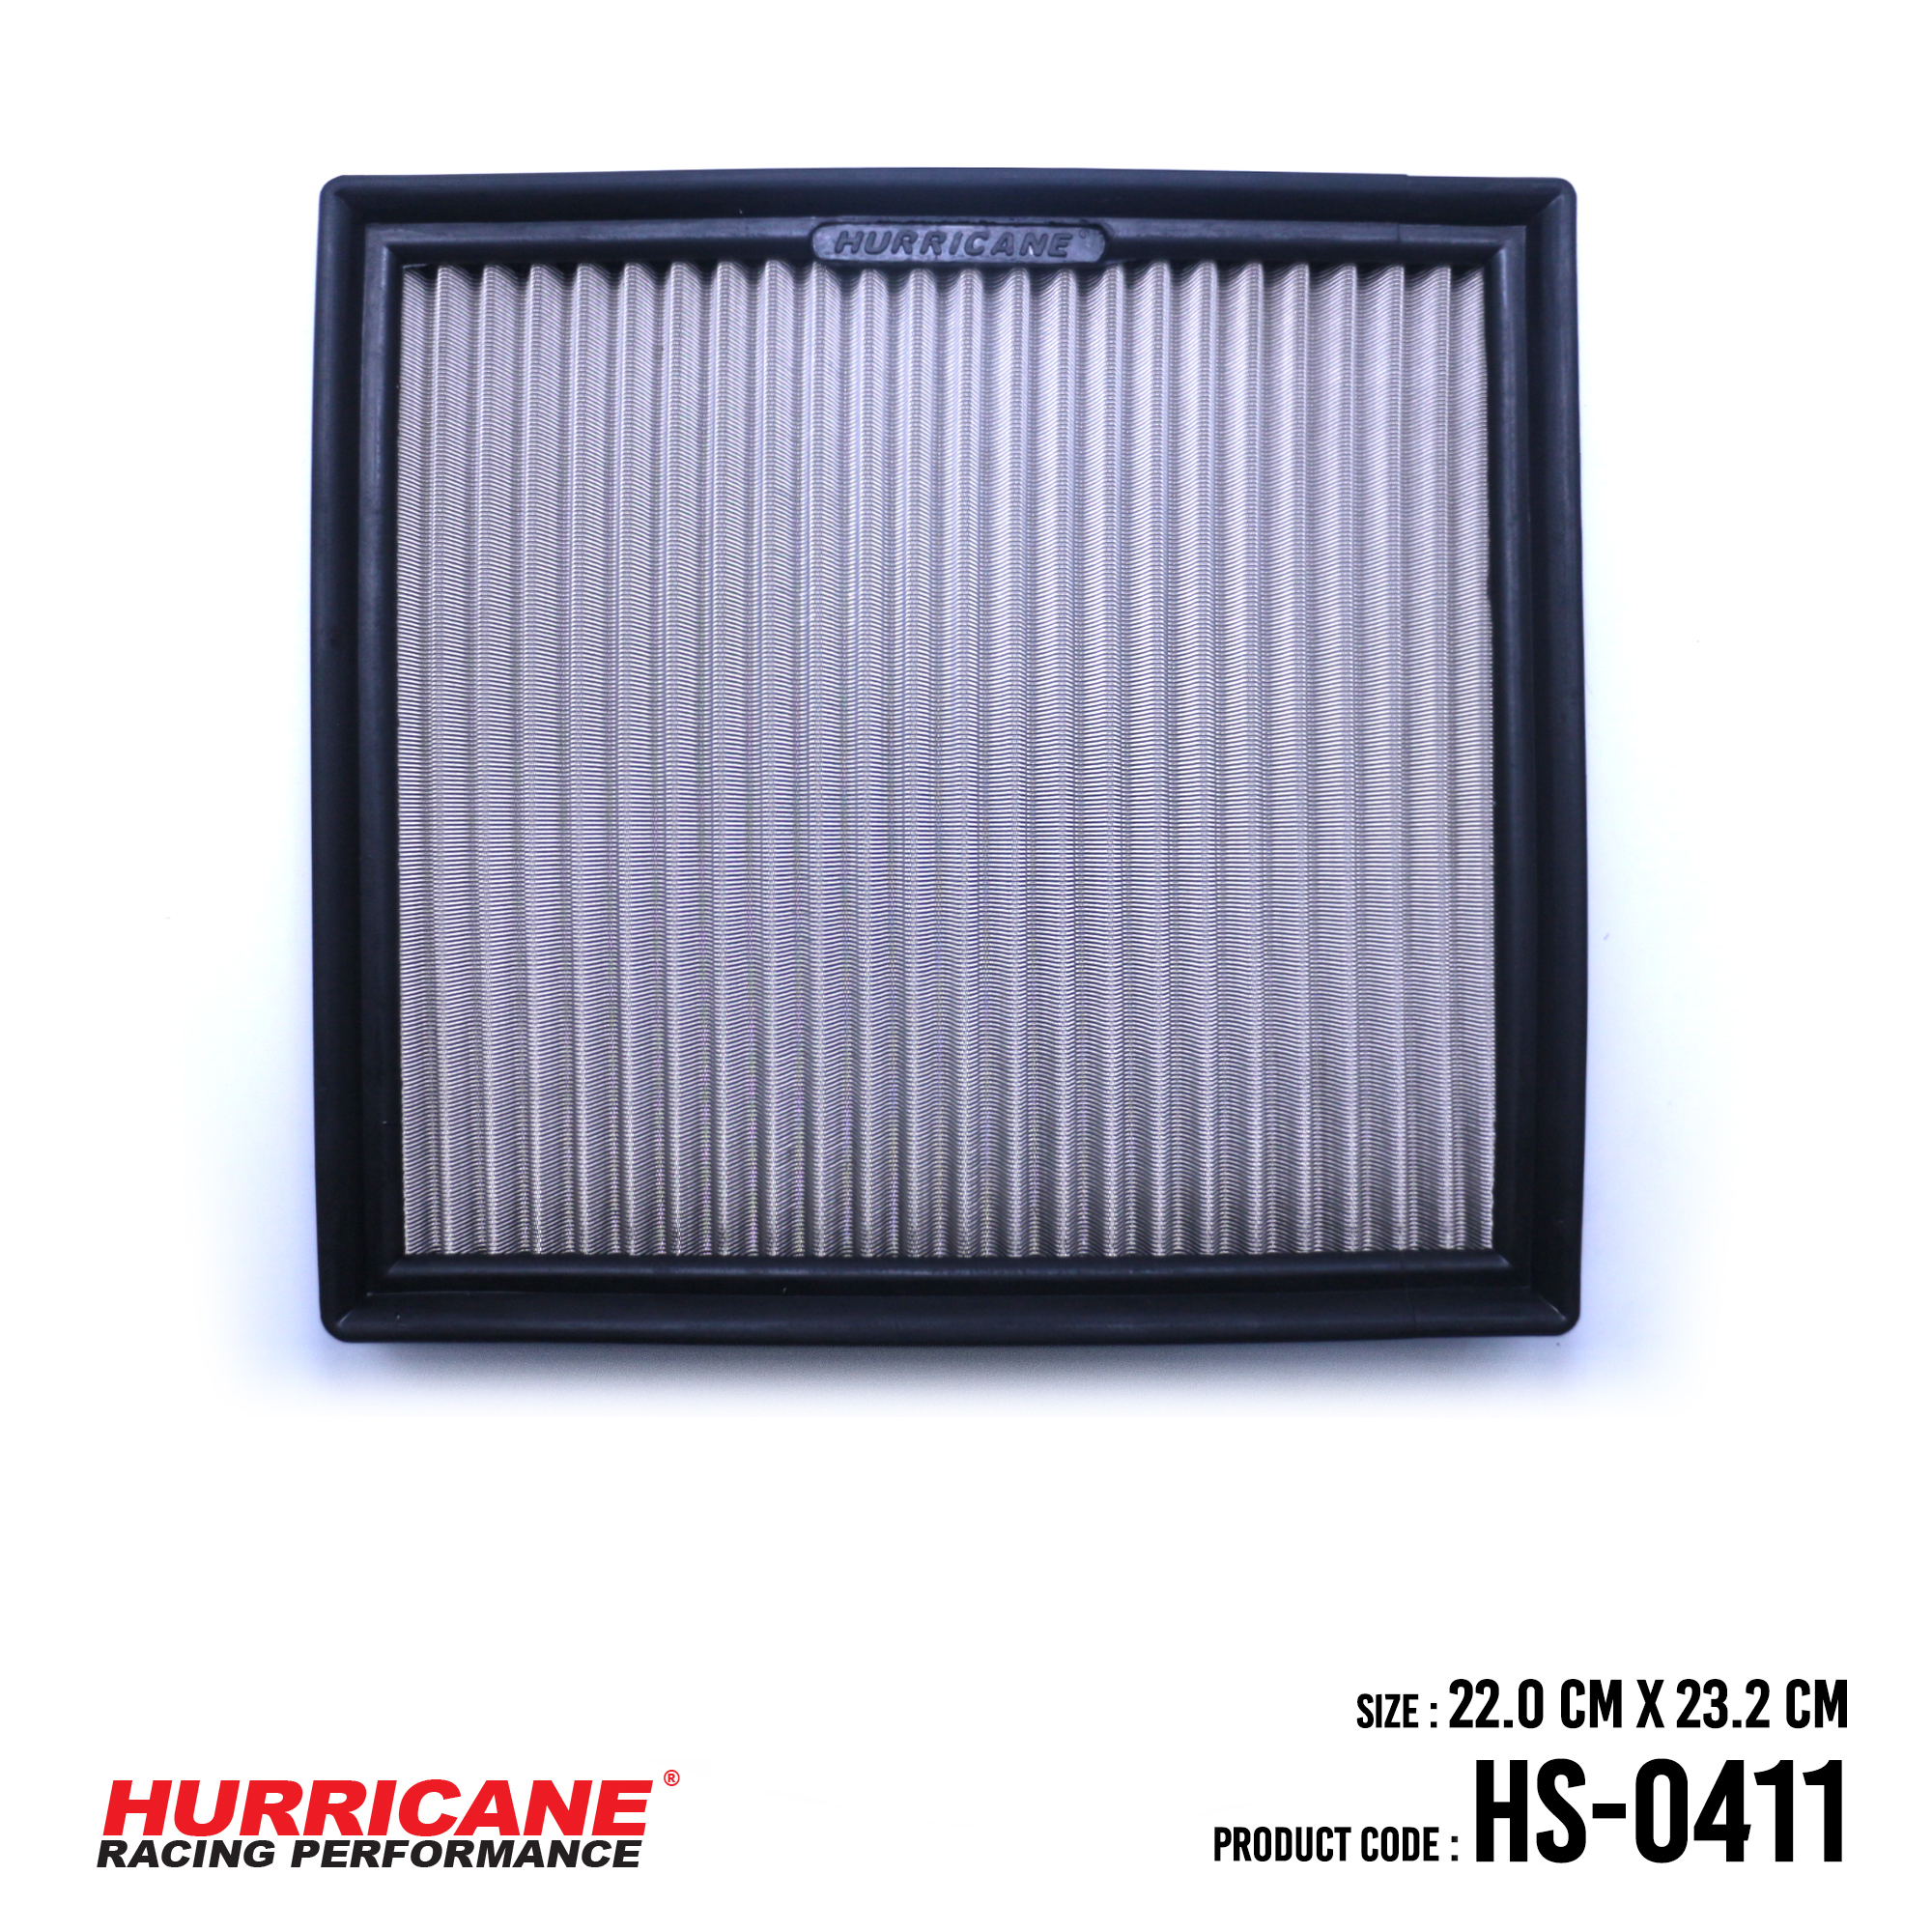 HURRICANE STAINLESS STEEL AIR FILTER FOR HS-0411 Subaru